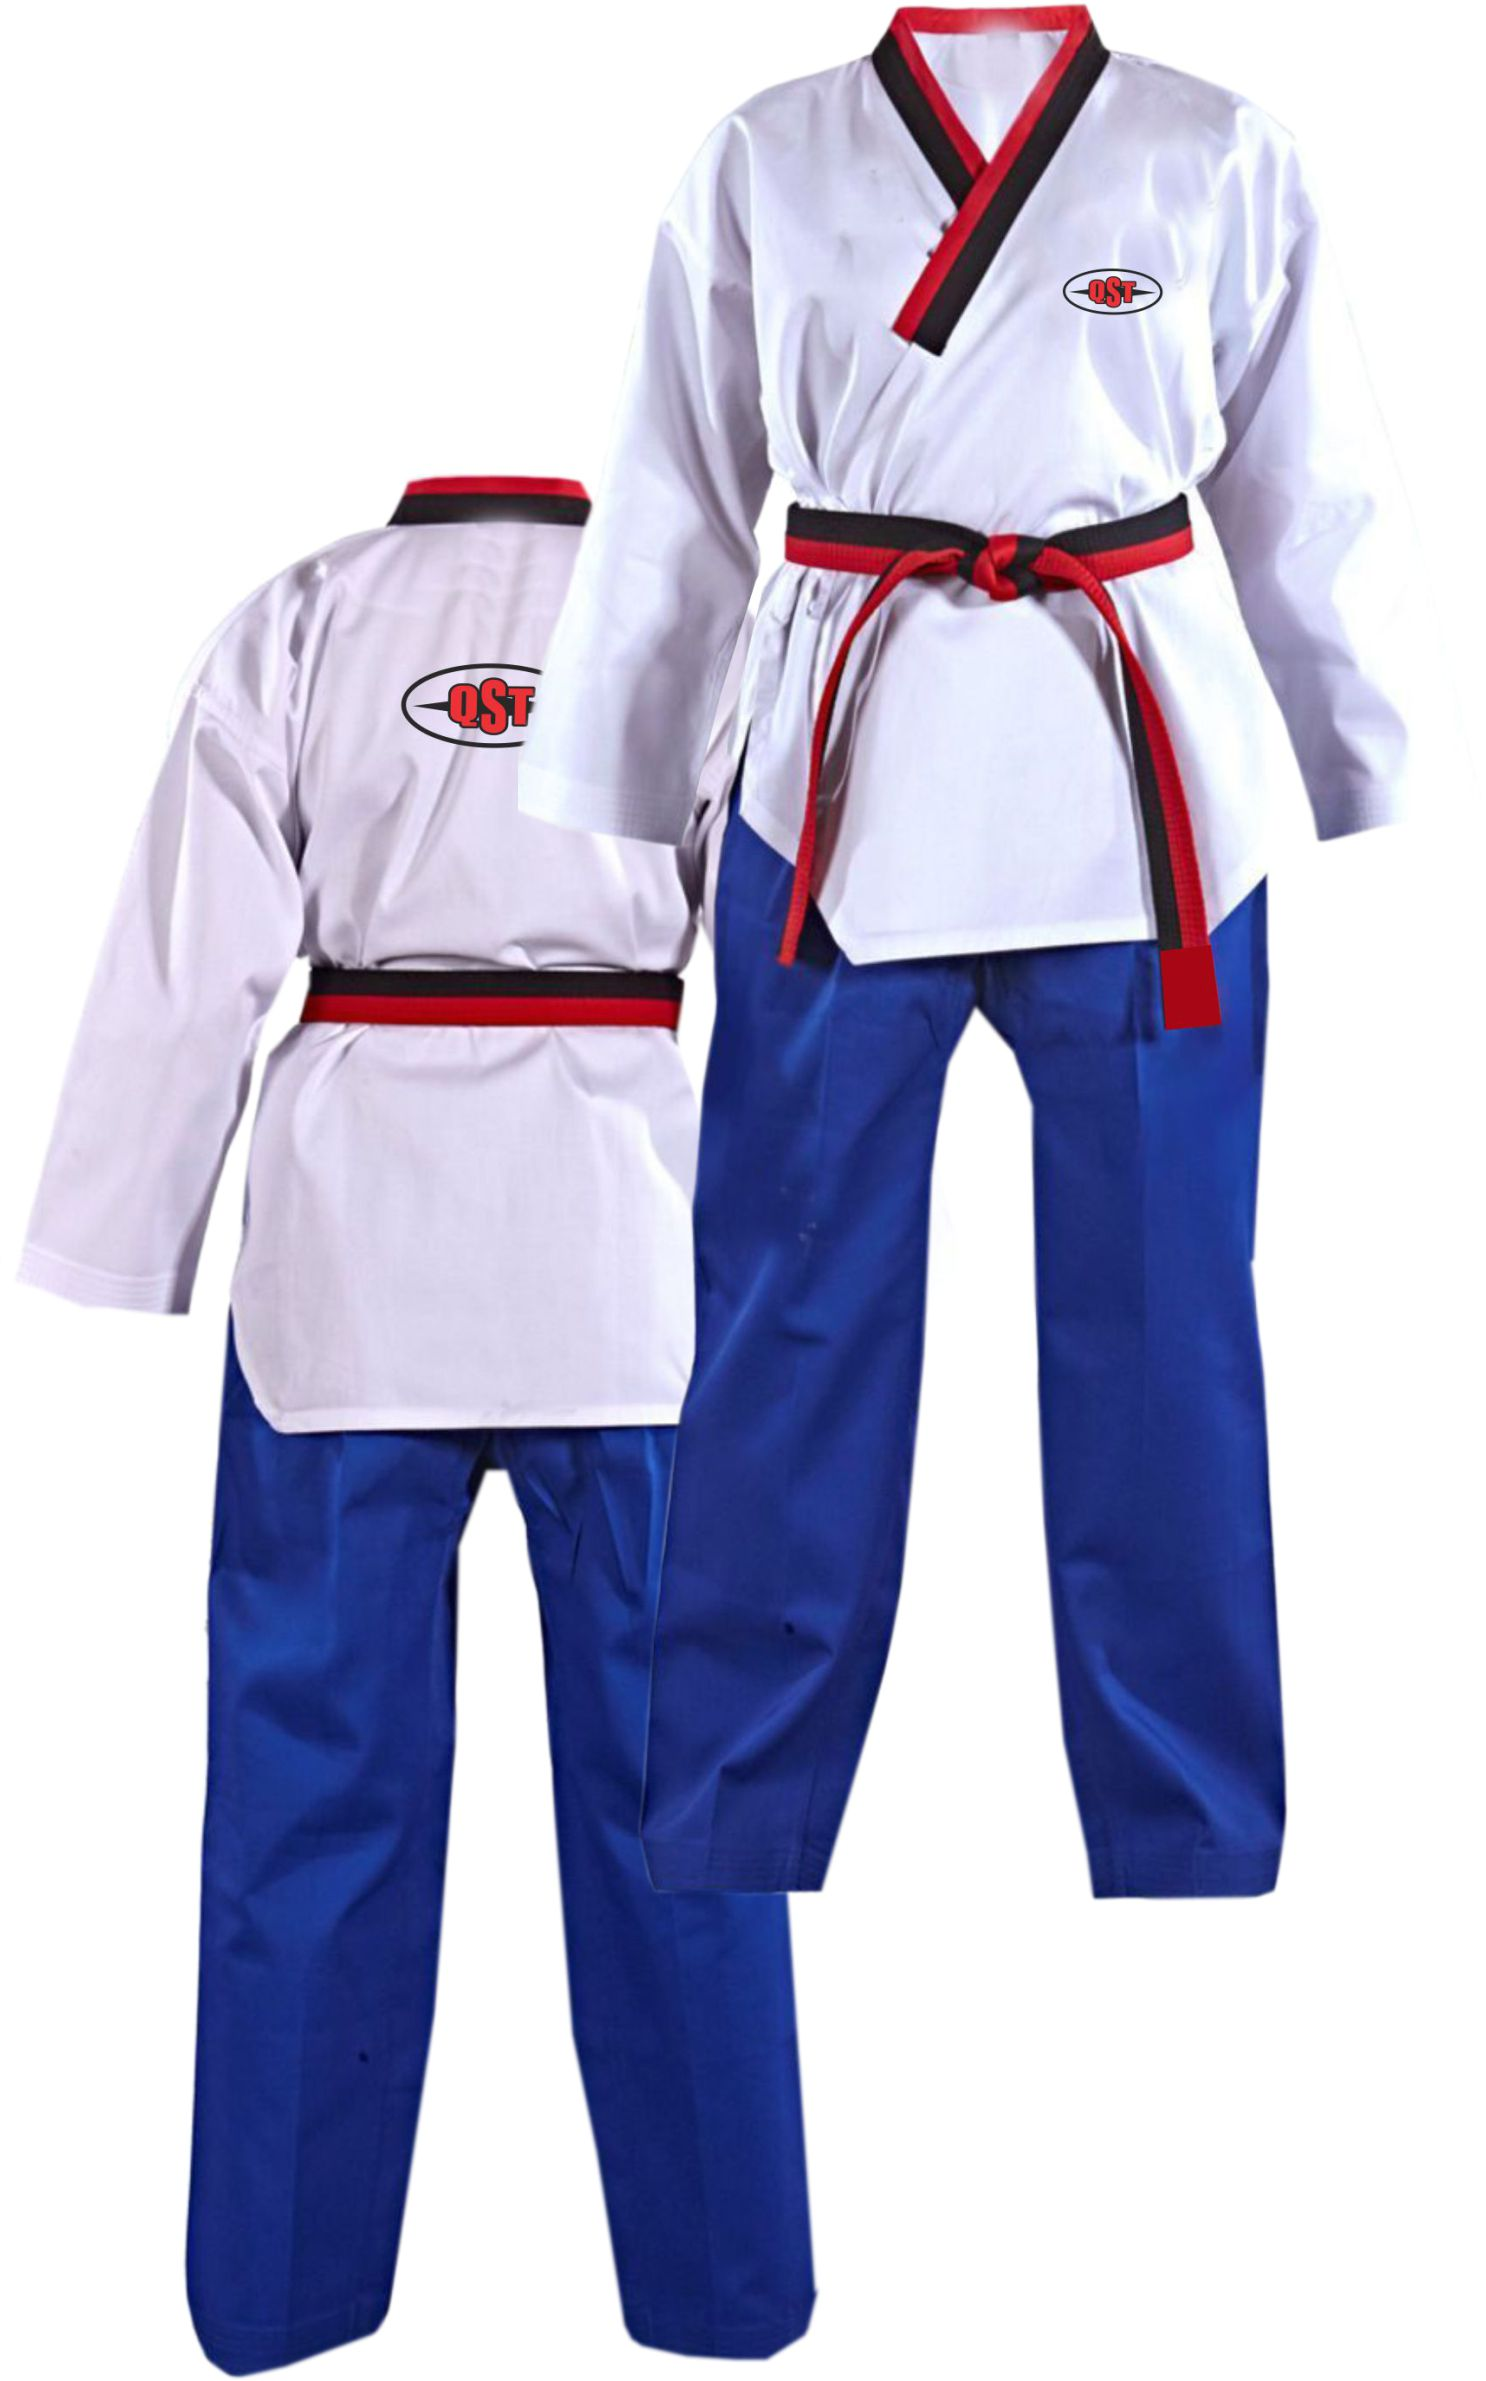 Taekwondo Uniform - TK-3530